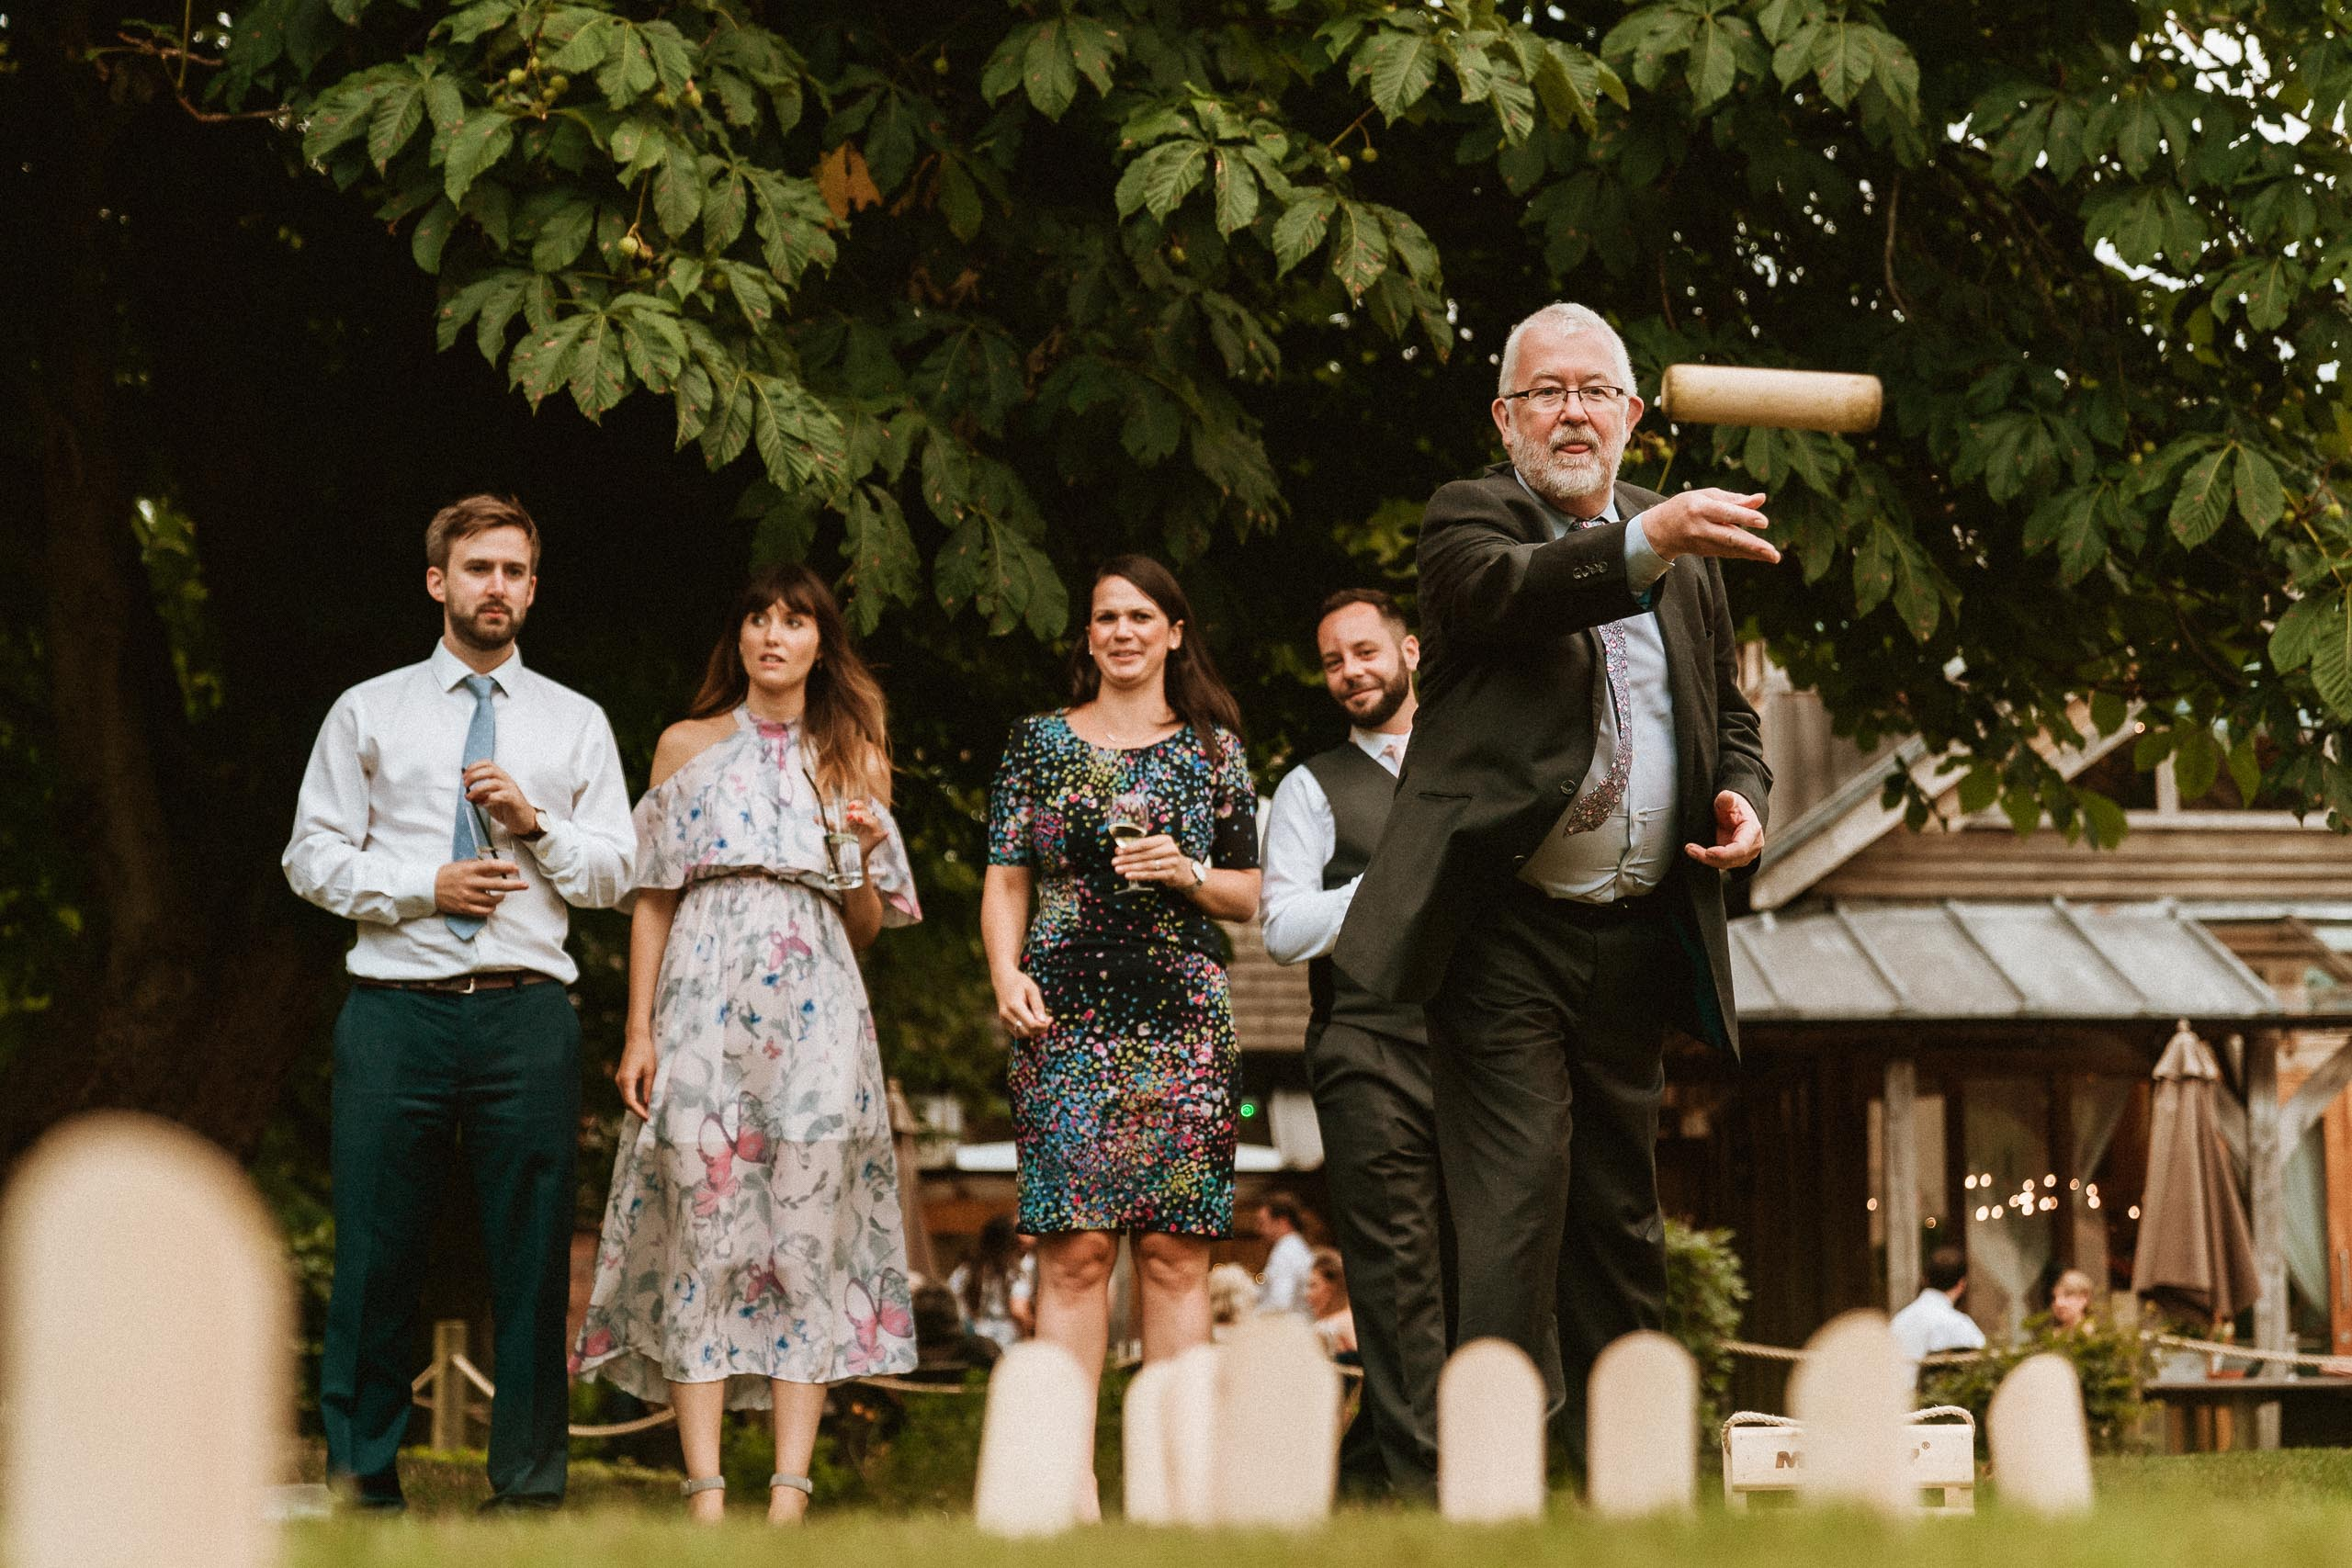 bearded man playing throwing game outside wedding venue